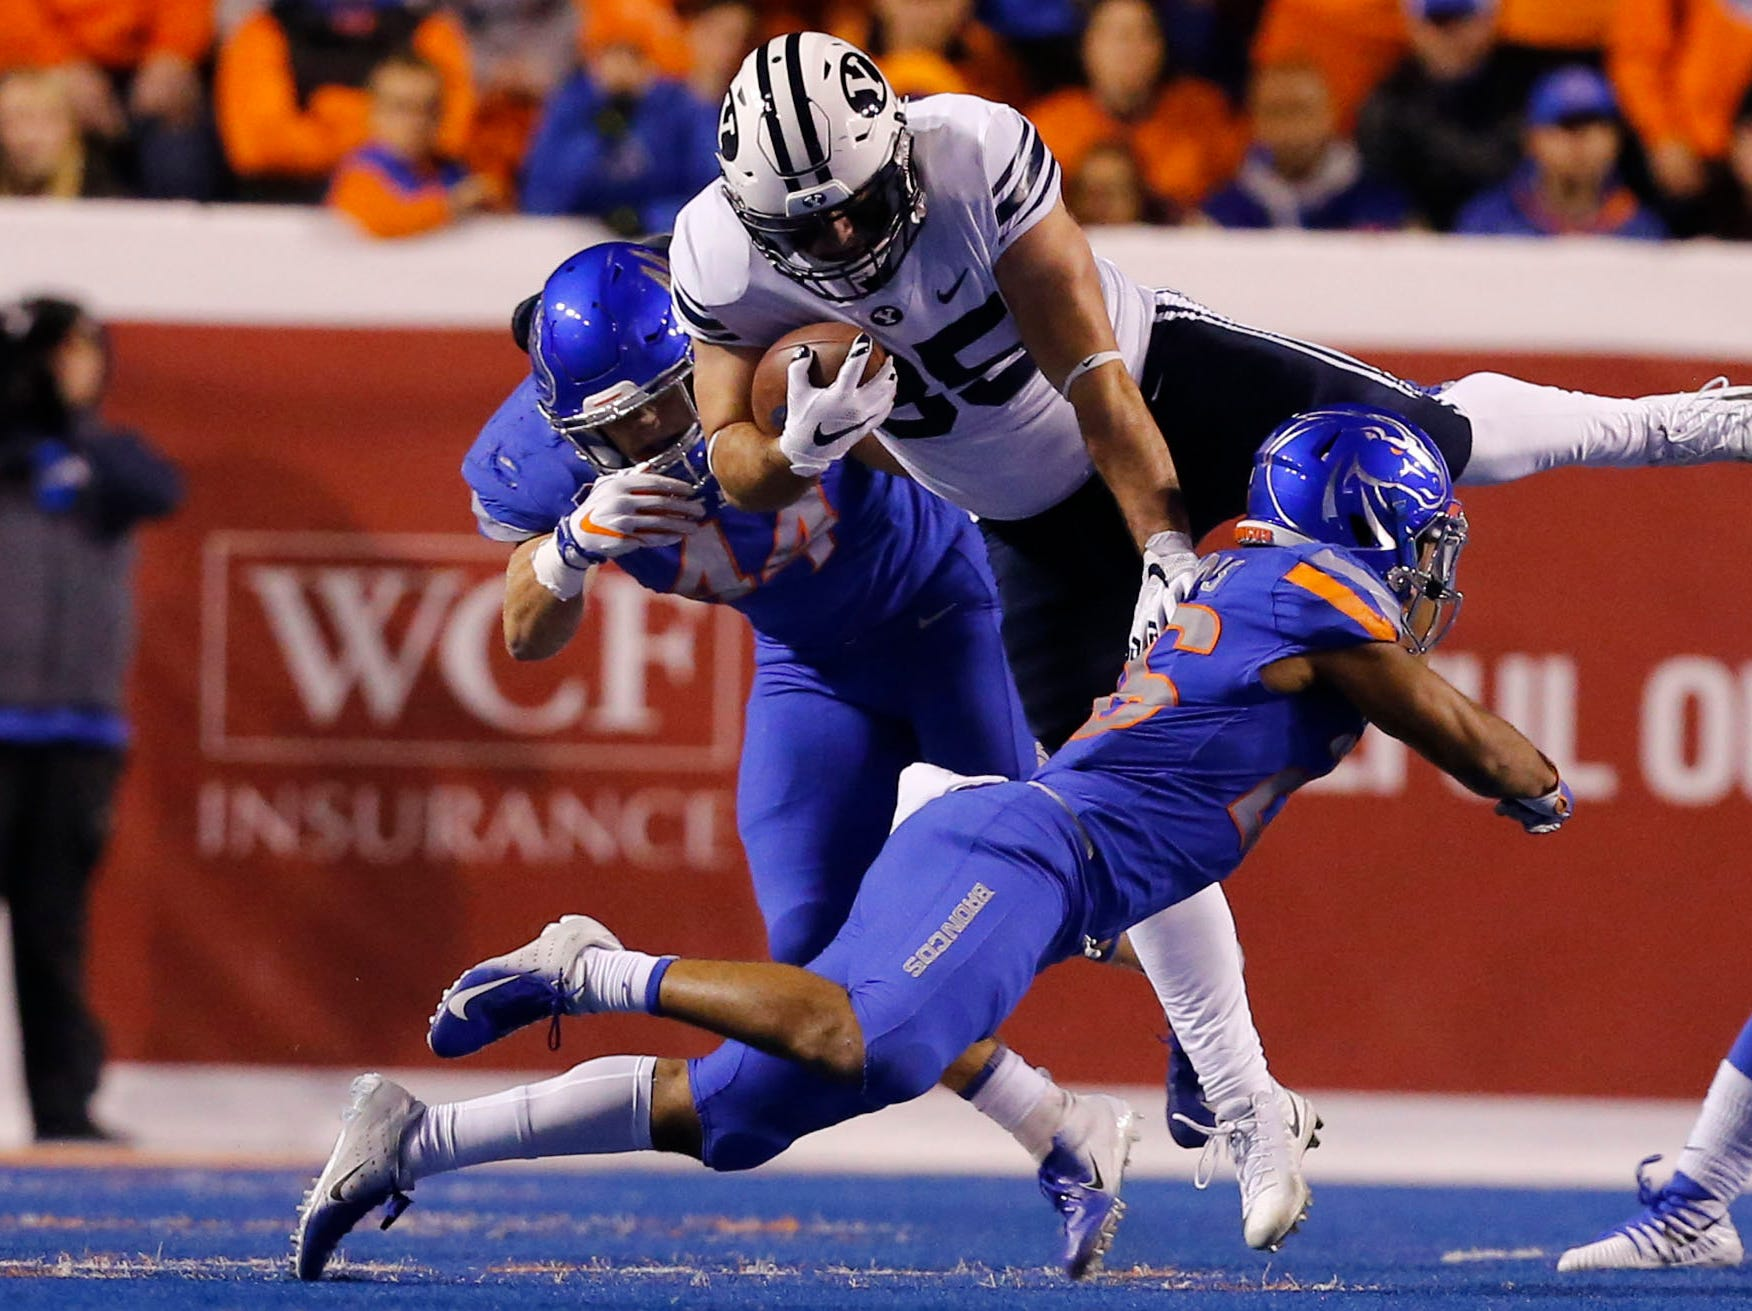 Brigham Young Cougars running back Brayden El-Bakri (35) is upended by Boise State Broncos cornerback Avery Williams (26) during the first half of play at Albertsons Stadium.